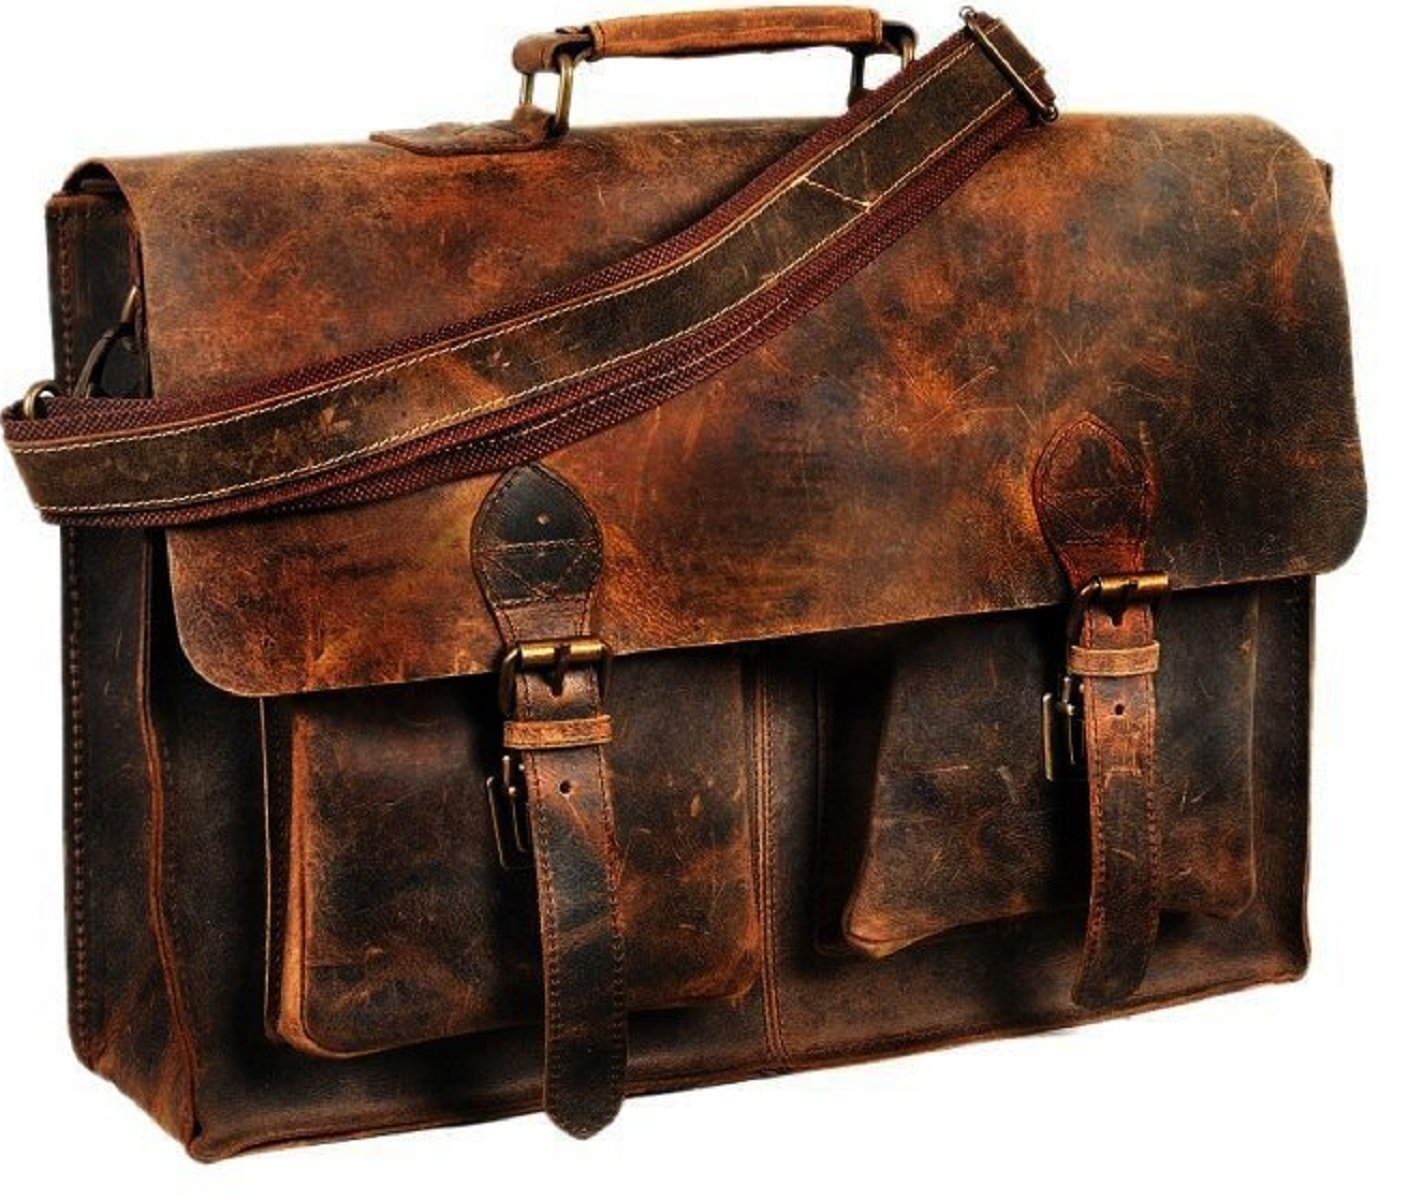 MESSENGER BAG RETRO BUFFALO HUNTER LEATHER LAPTOP MESSENGER BAG OFFICE BRIEFCASE COLLEGE 16 INCH by VINTAGE COUTURE VCB 01